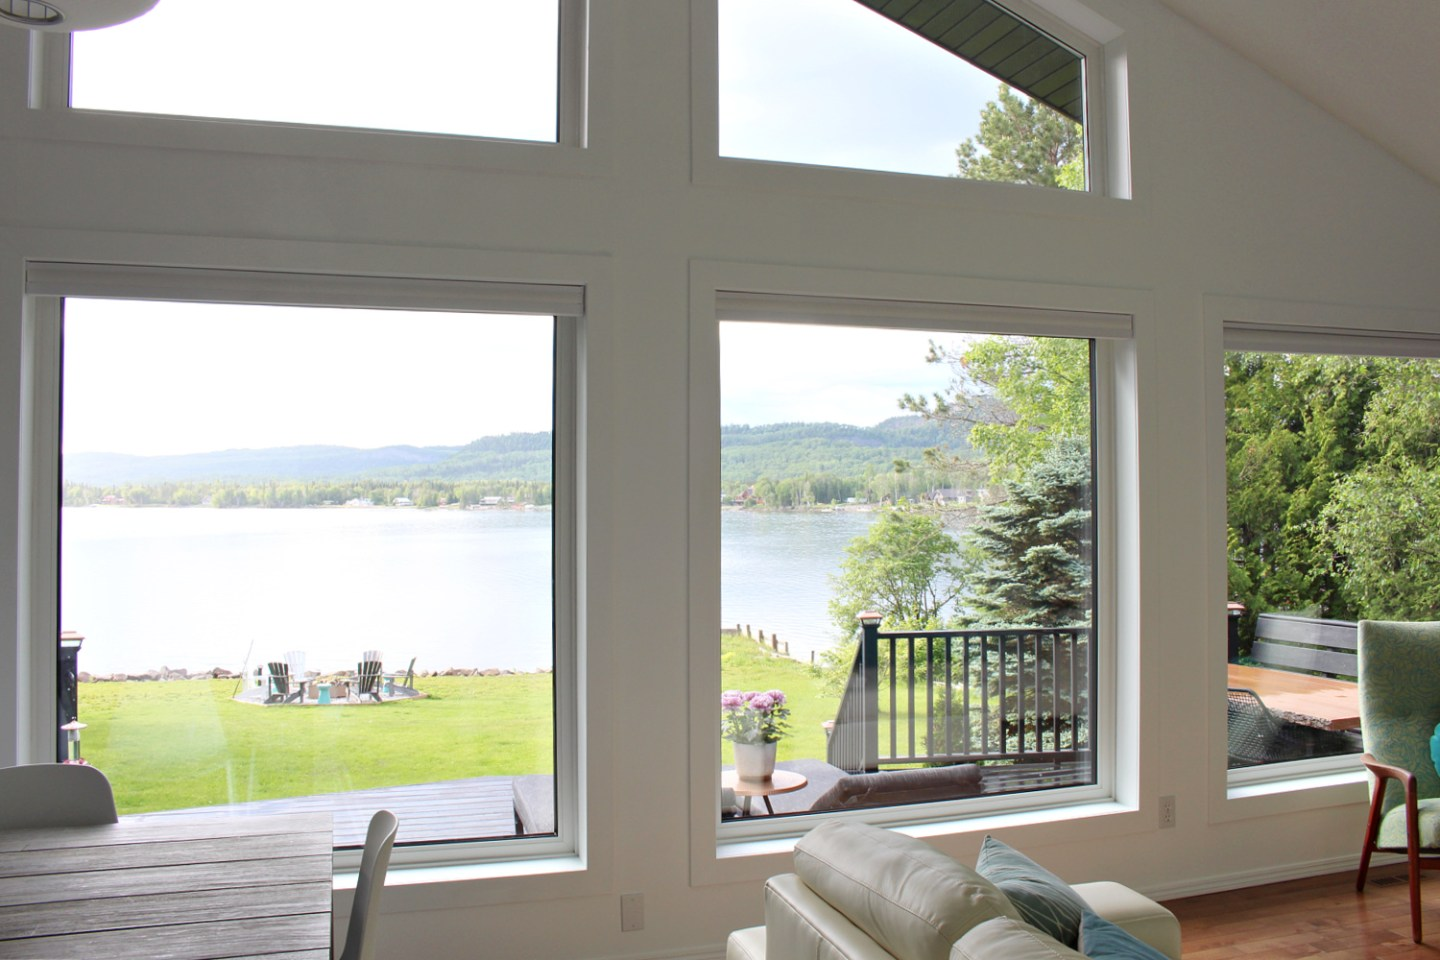 Wall of Windows with Lake View